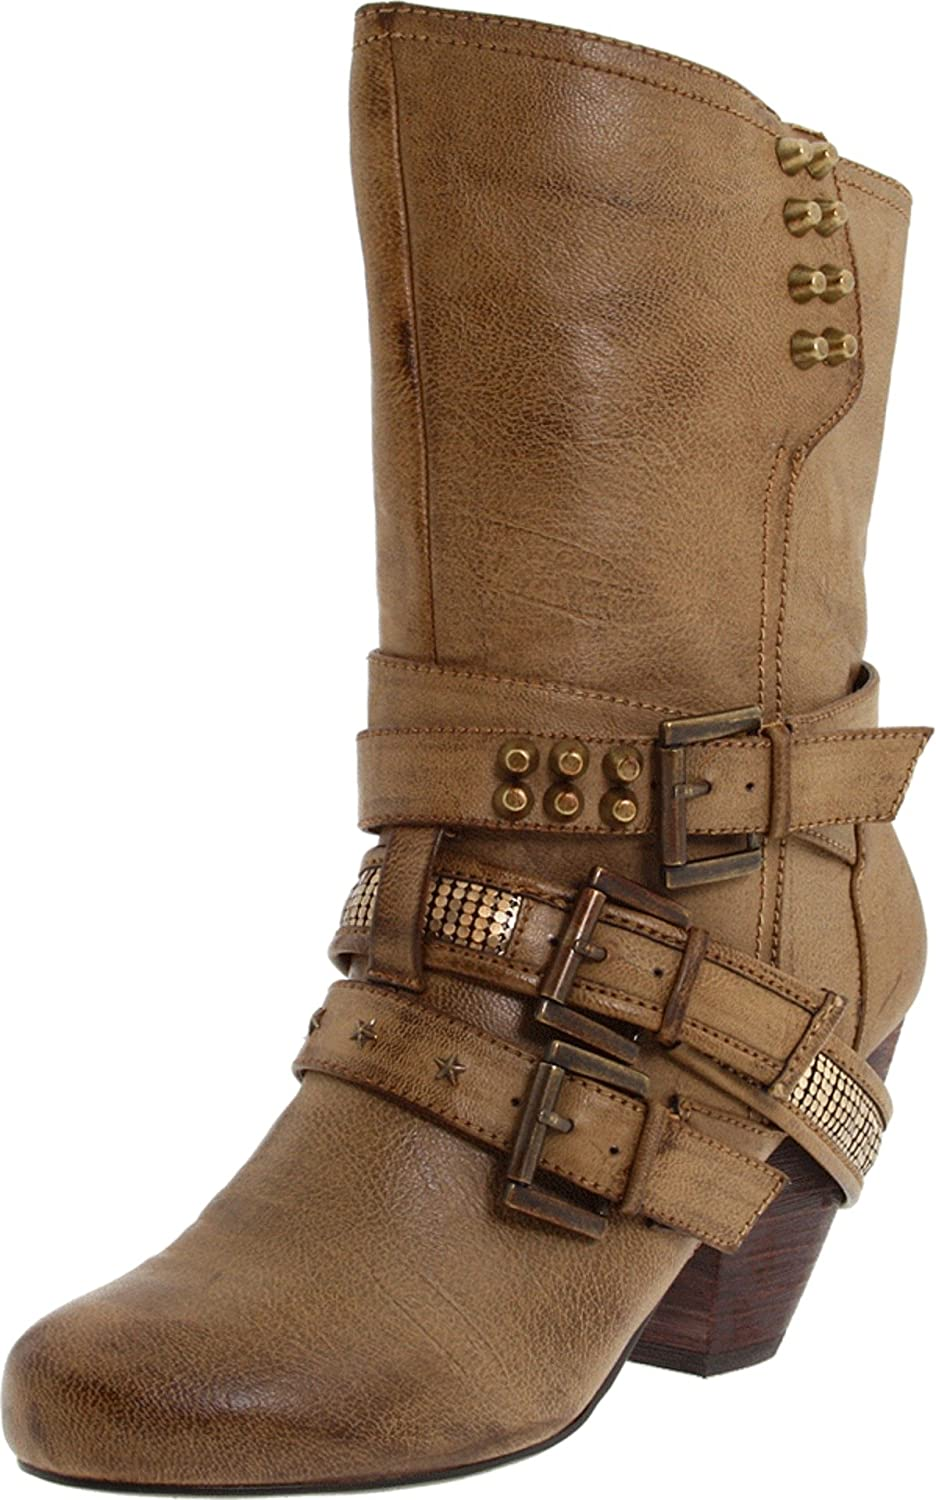 Not Rated Women's Tampa Mall With Ankle Pride Boot New products world's highest quality popular